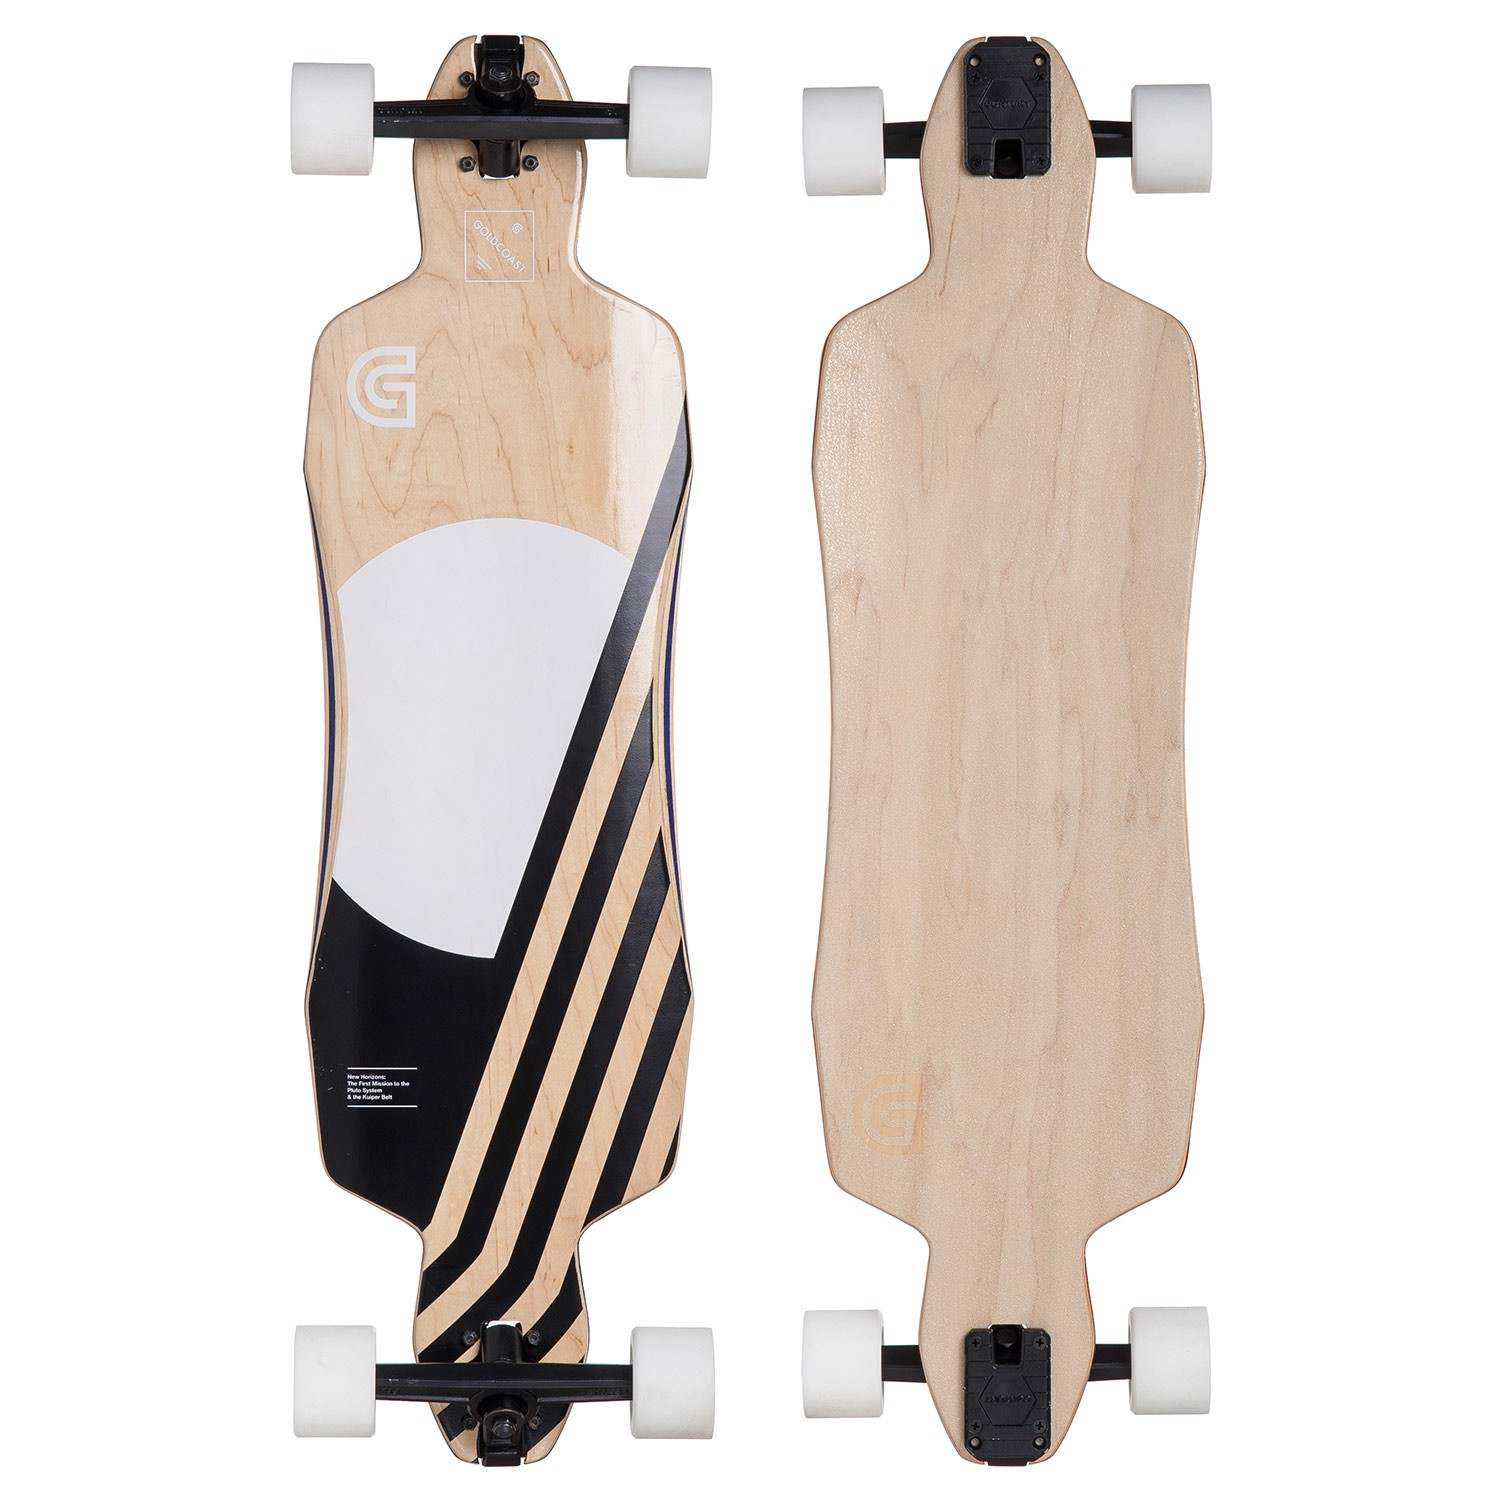 "Longboard Goldcoast Pluton Drop Through vel.36"" / 91 cm 16 + doručení do 24 hodin"